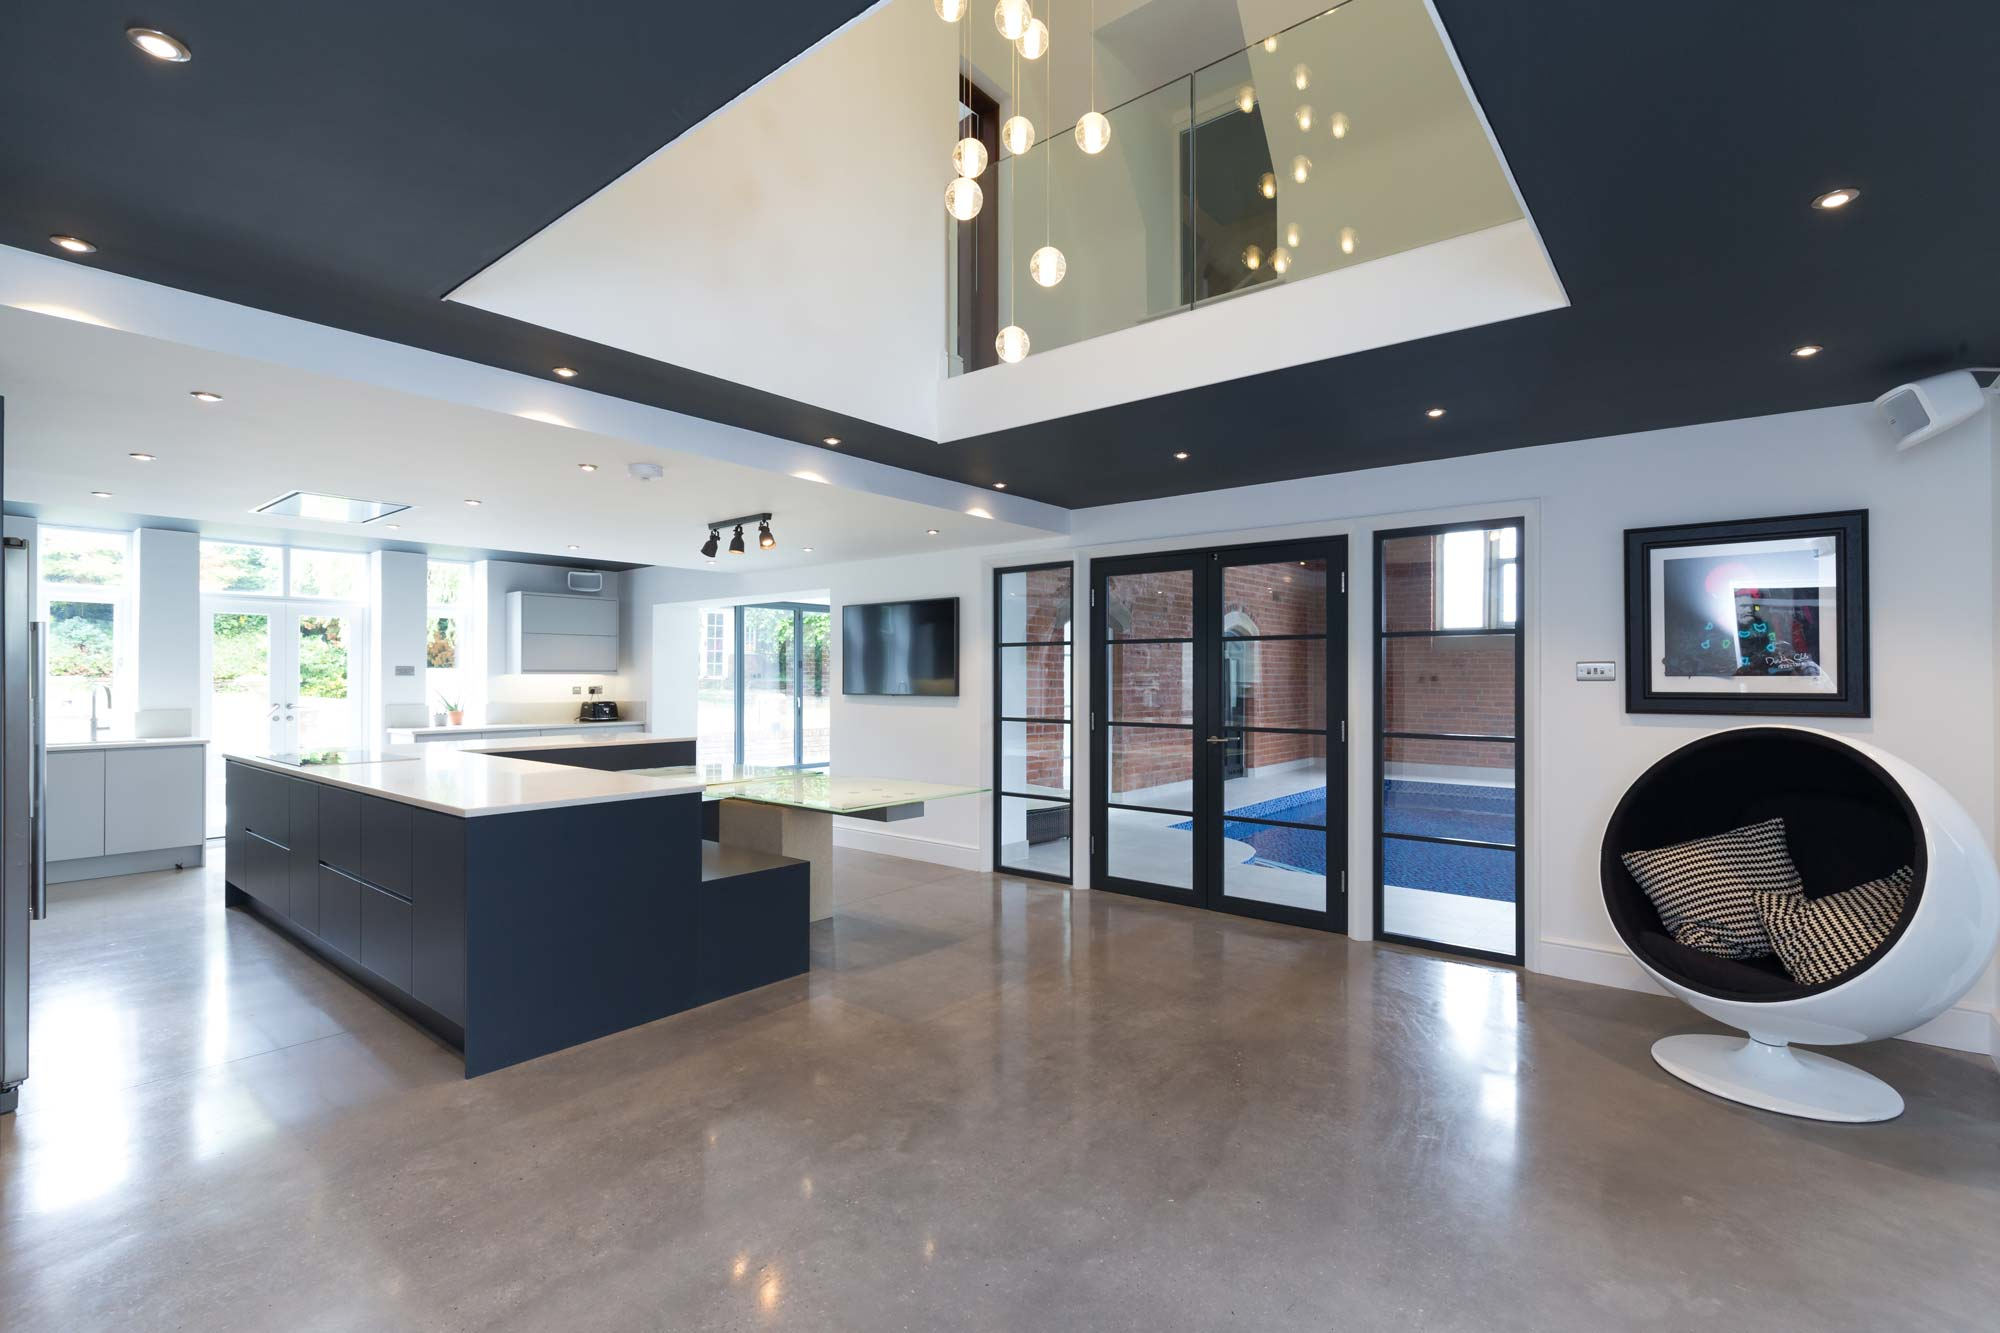 polished concrete floor, open plan kitchen, pool room, double height hall and landing